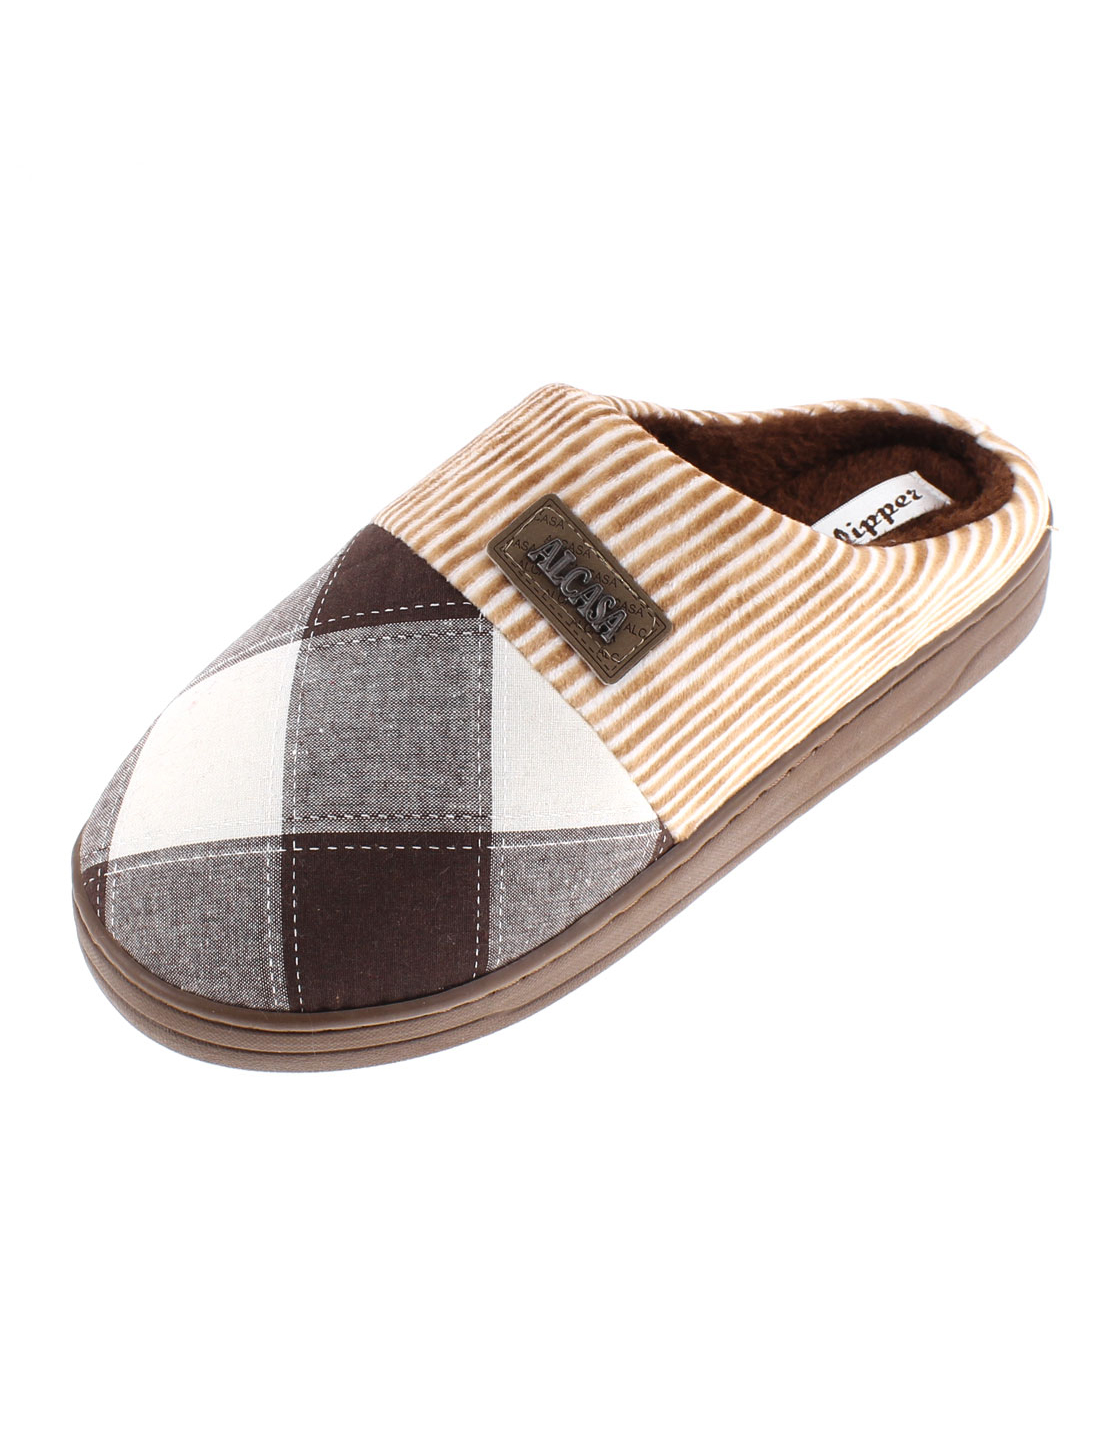 Home Women Grid Pattern Non-skid Sole Warmer Cotton Slippers Chocolate Color US 8.5